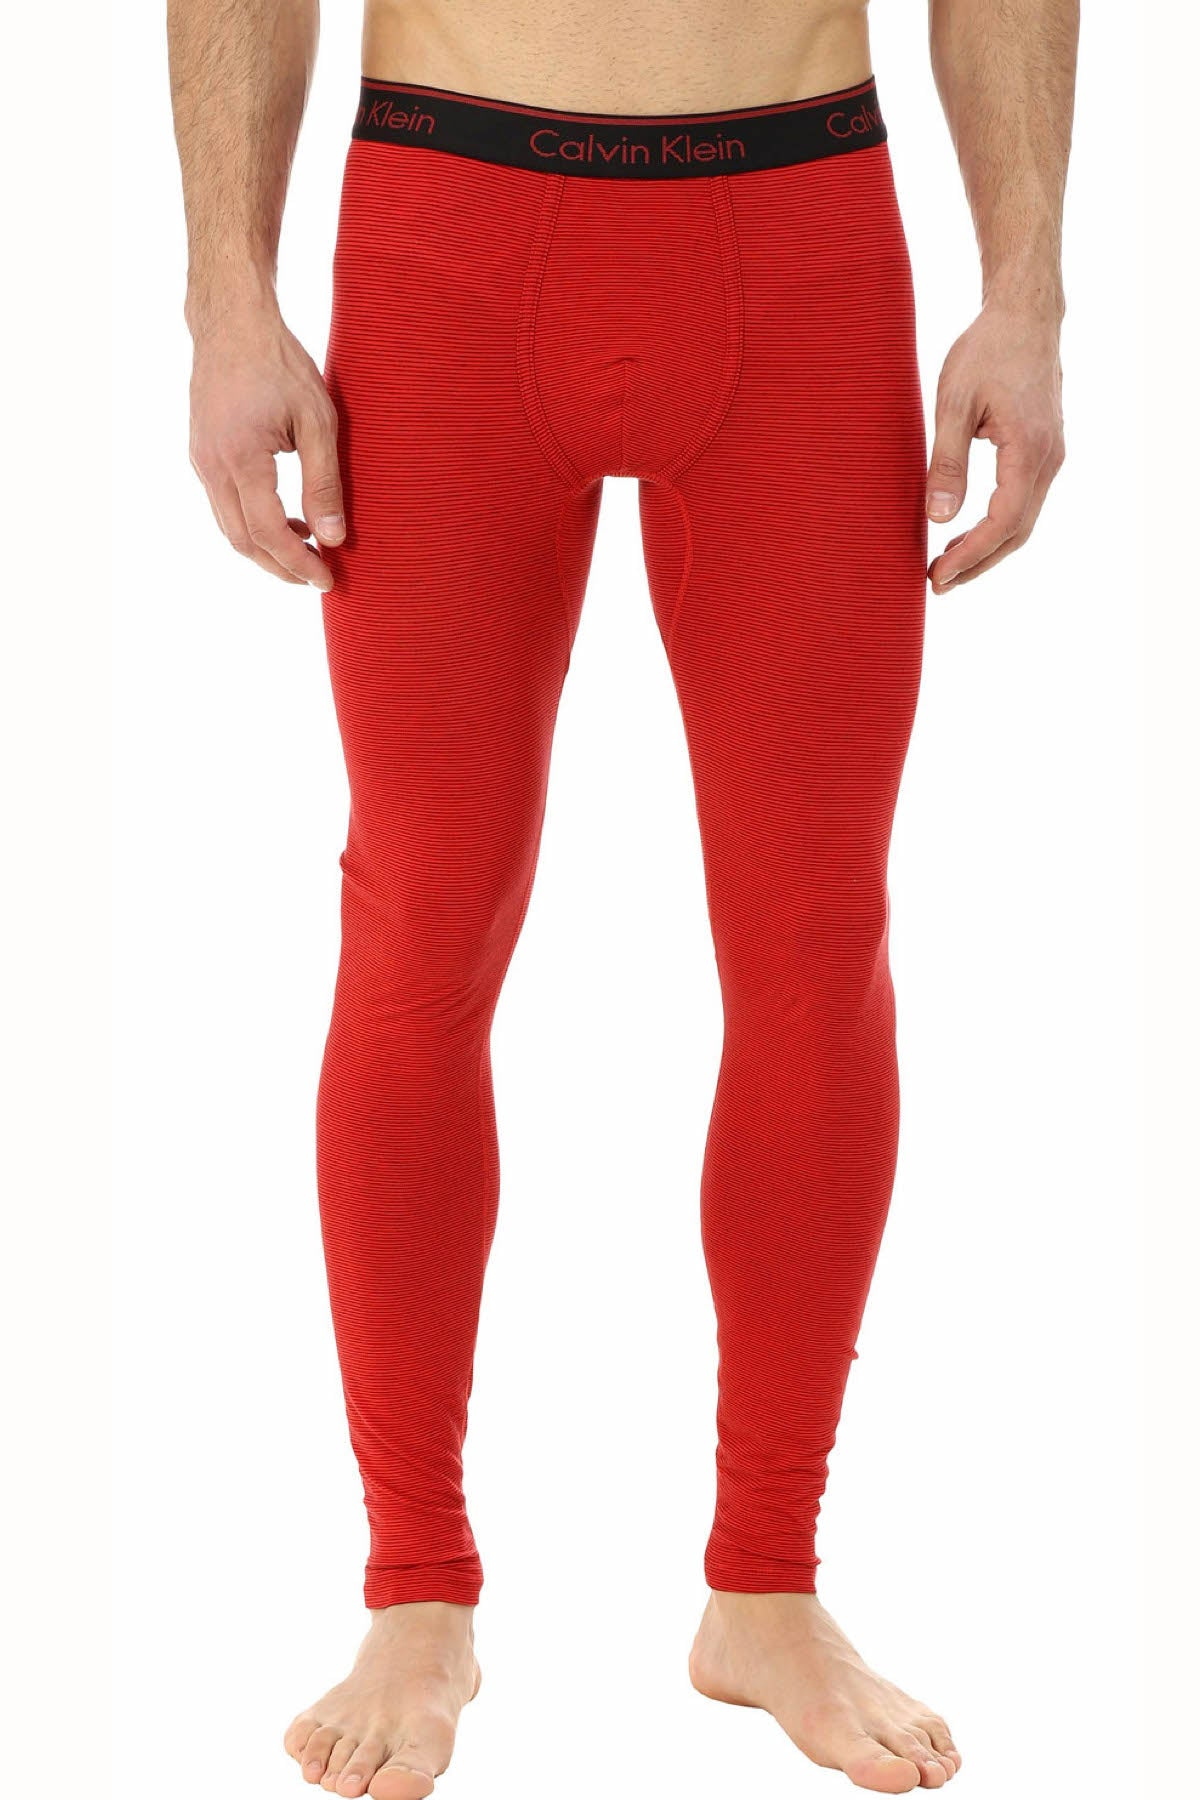 Calvin Klein Red-Stripe Special-Edition Base Layer Pant